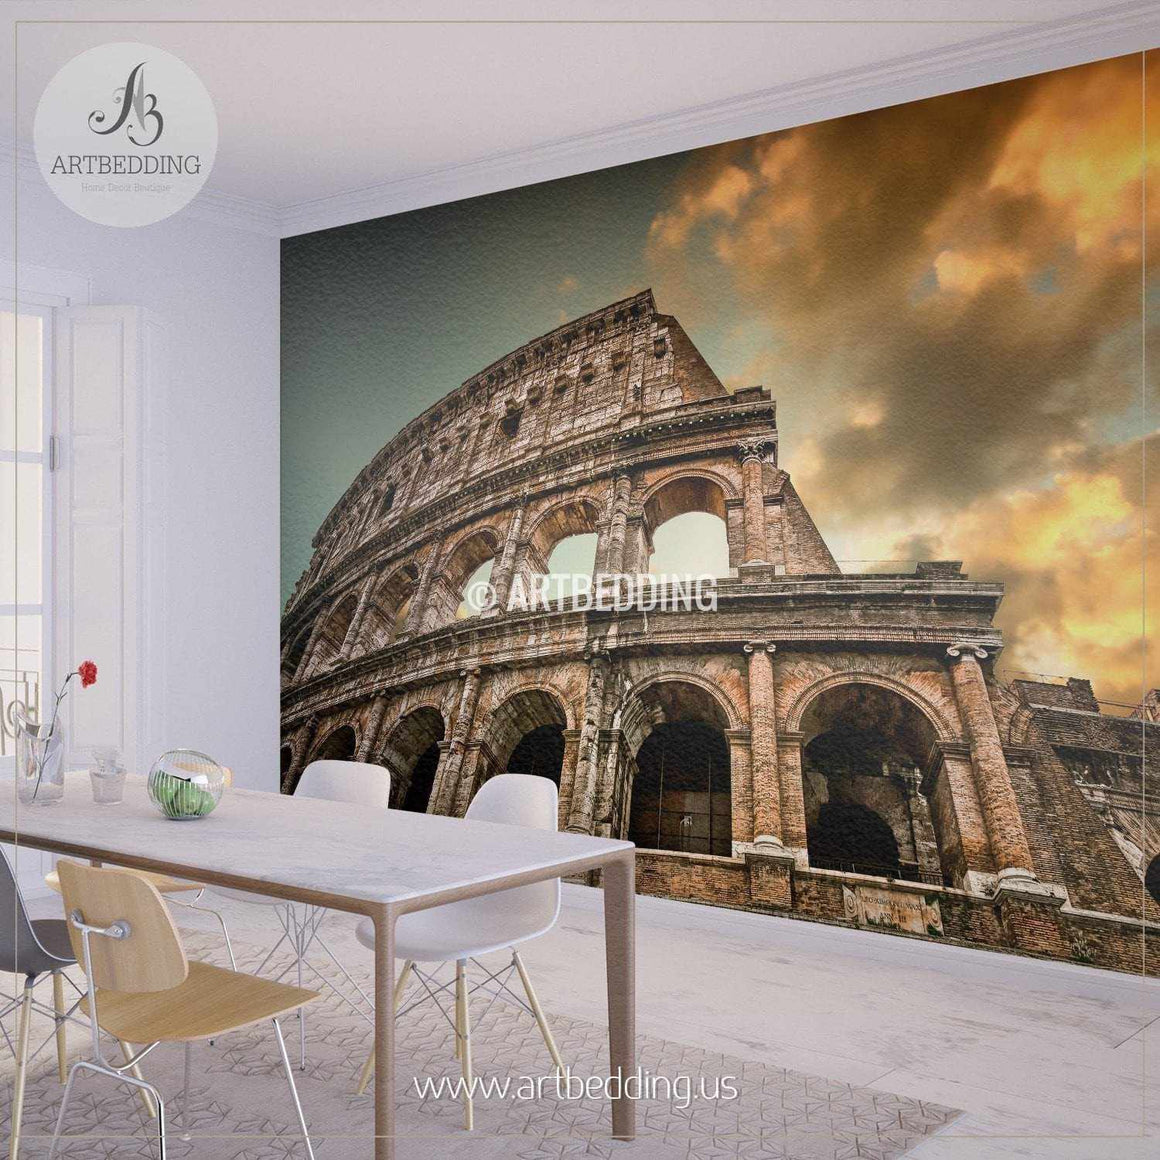 Colosseum in Rome Cityscape Wall Mural, Italy Photo sticker, Italy wall decor wall mural